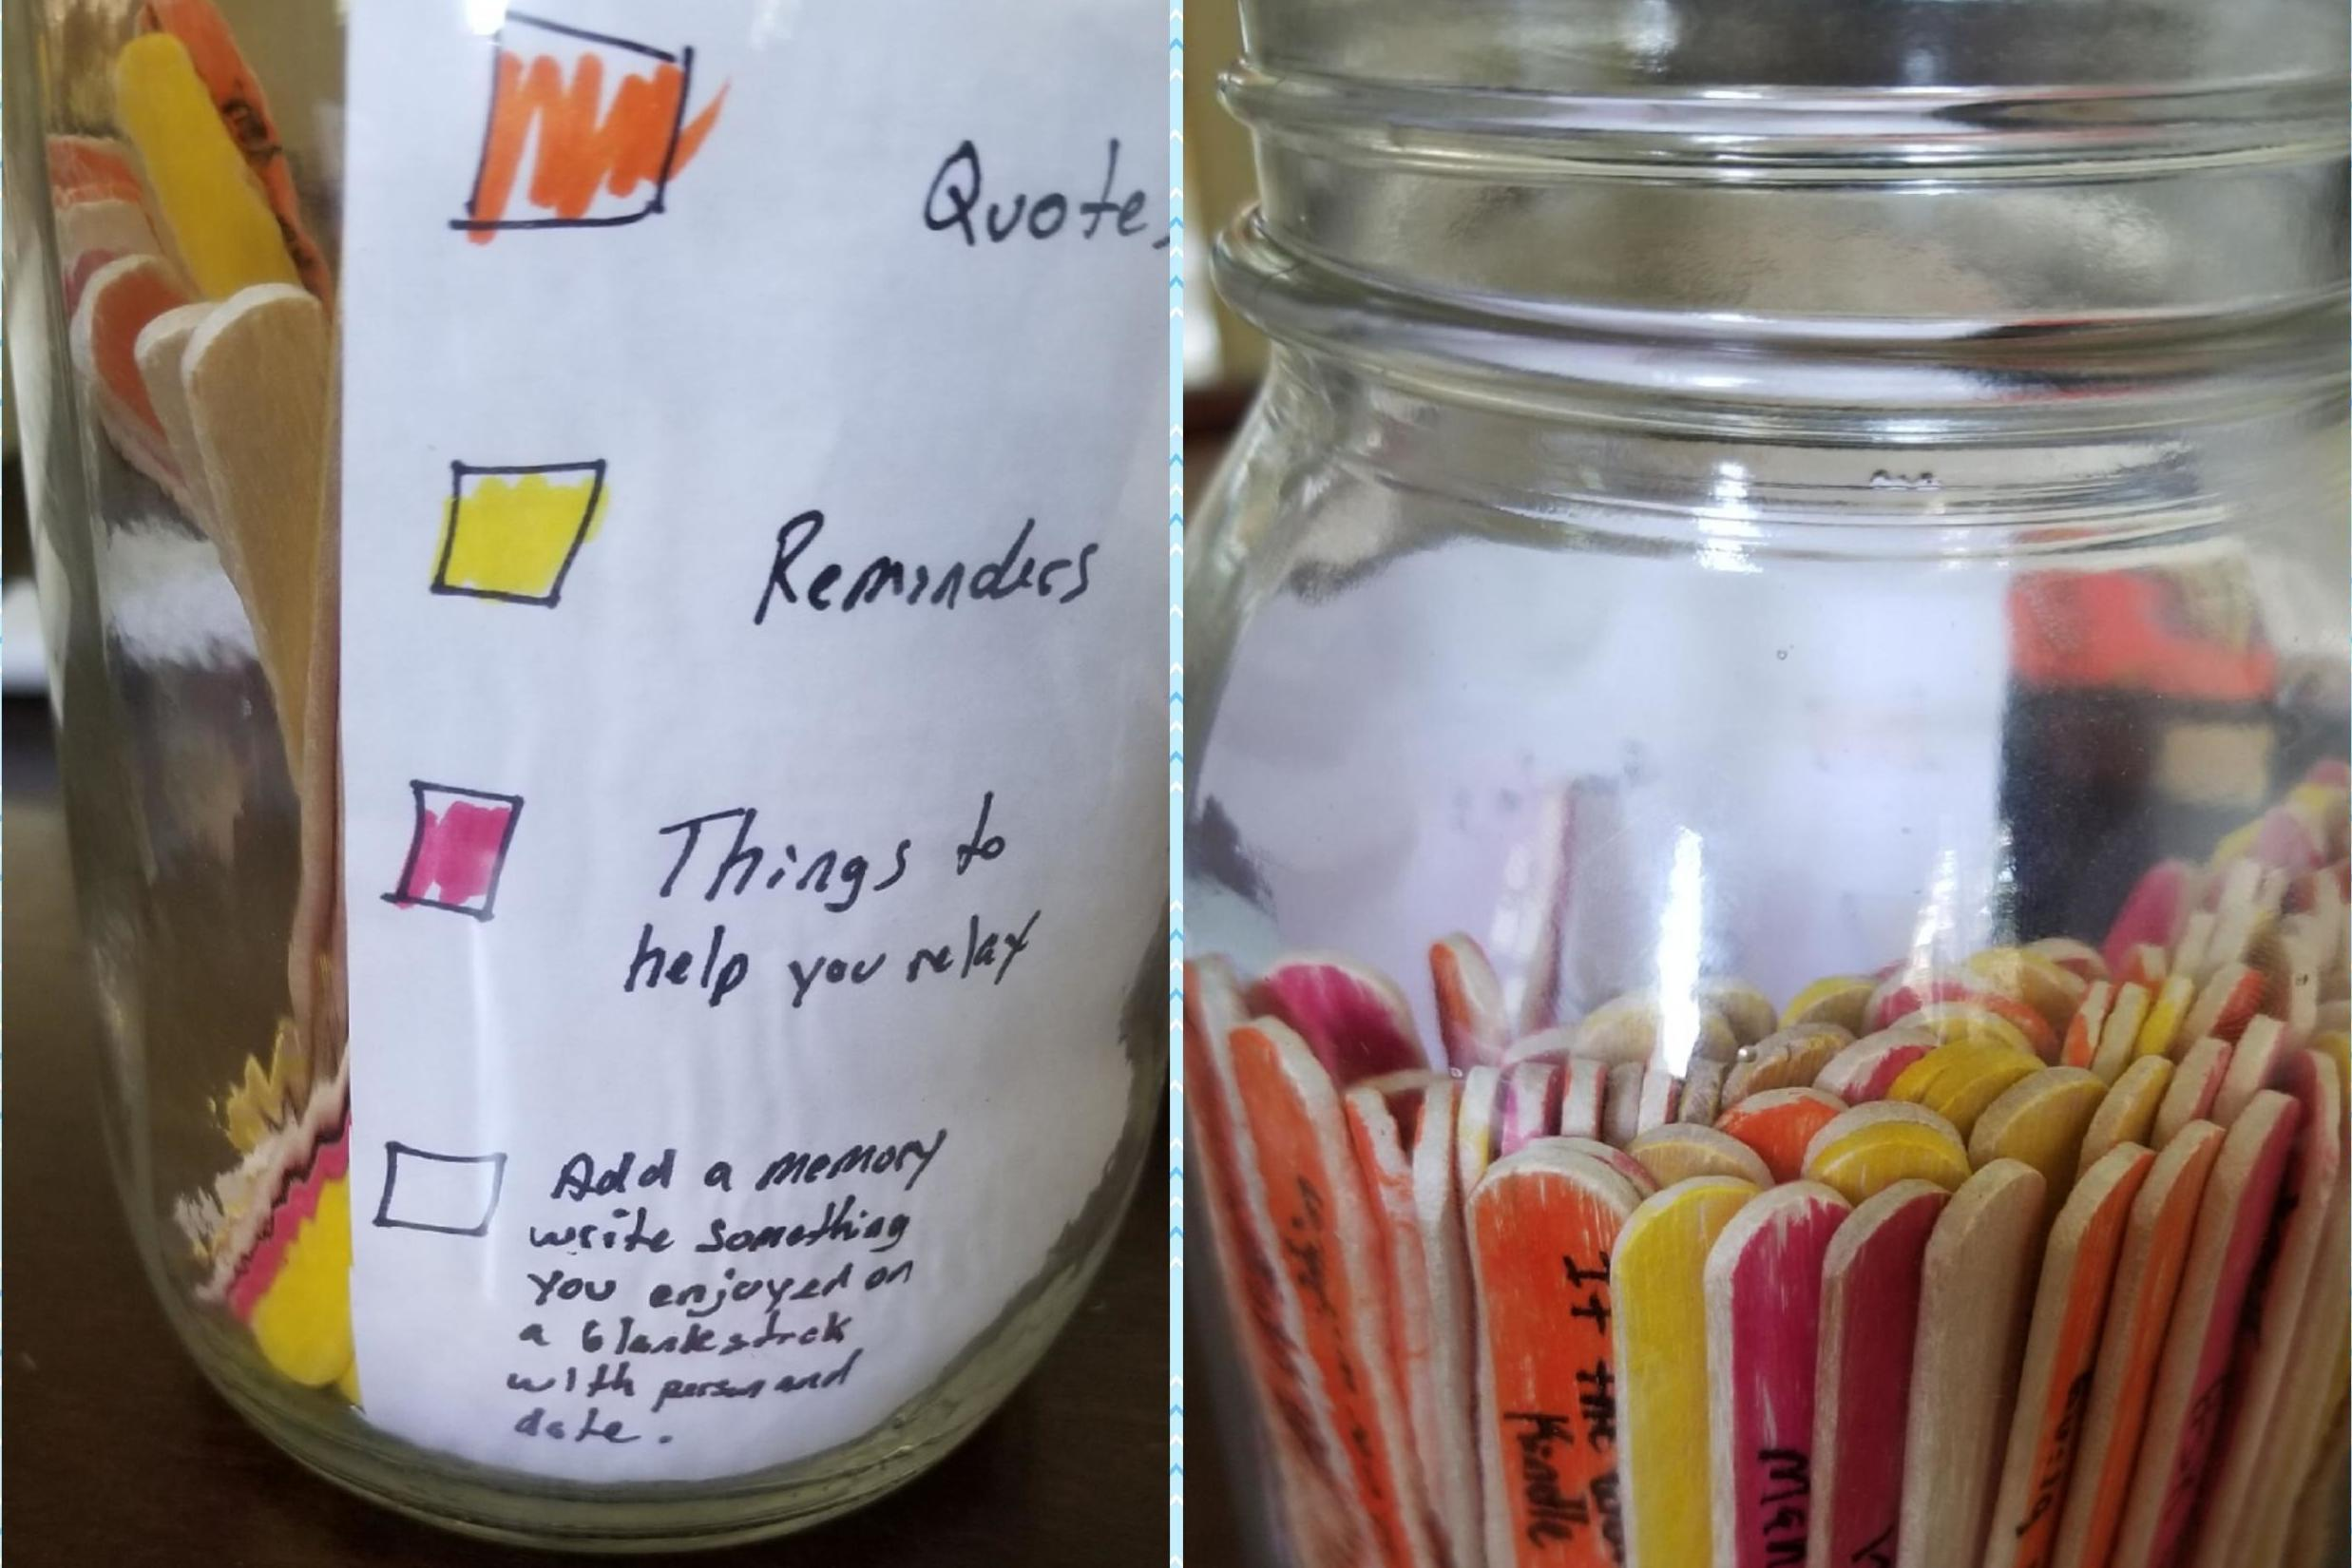 Boyfriend makes affirmation jar to help partner's anxiety and depression